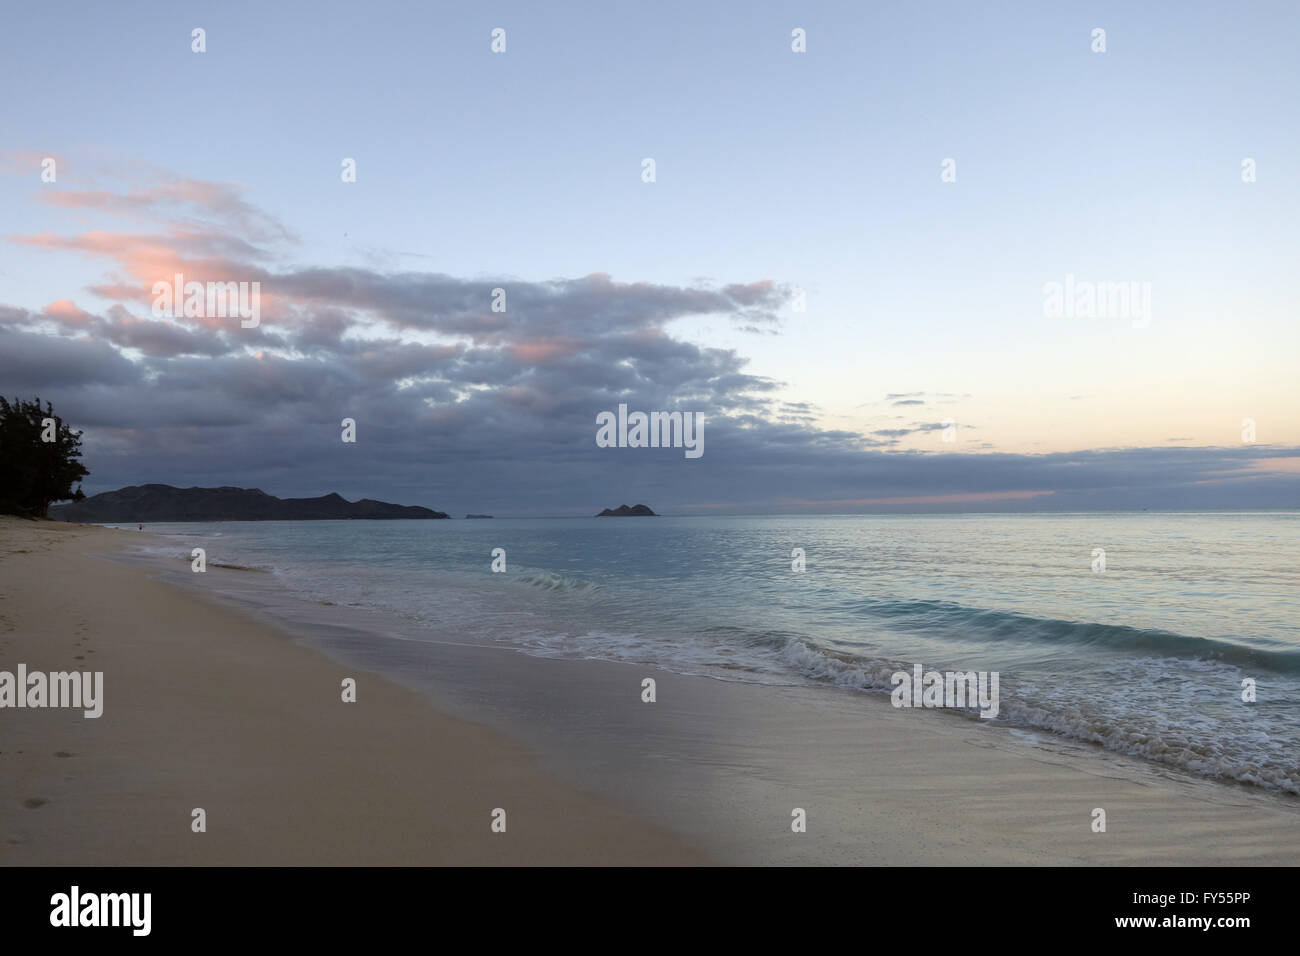 Gentle wave lap on Waimanalo Beach at dawn looking towards Mokulua islands on a nice day Oahu, Hawaii. - Stock Image